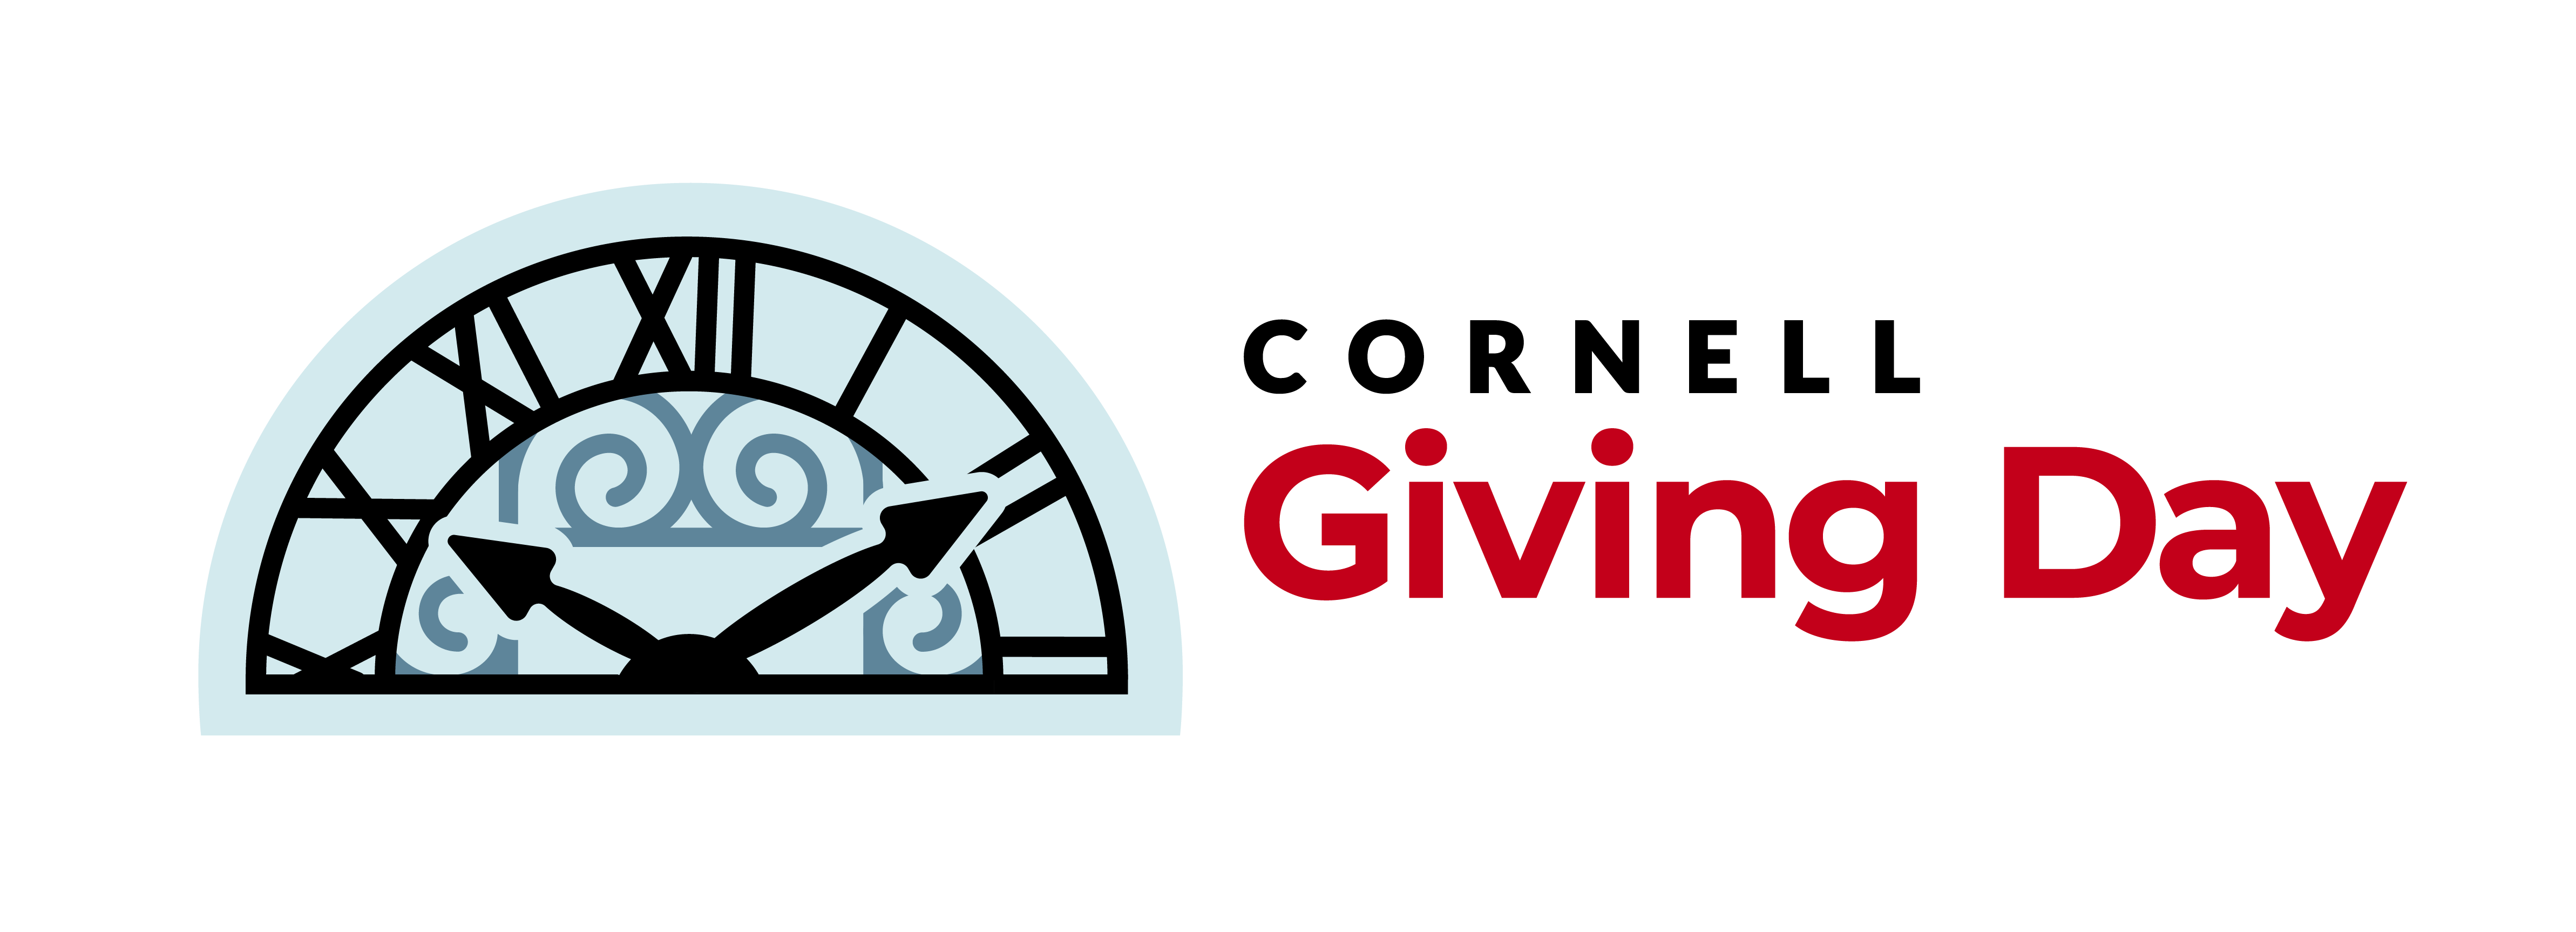 Cornell Giving Day logo2